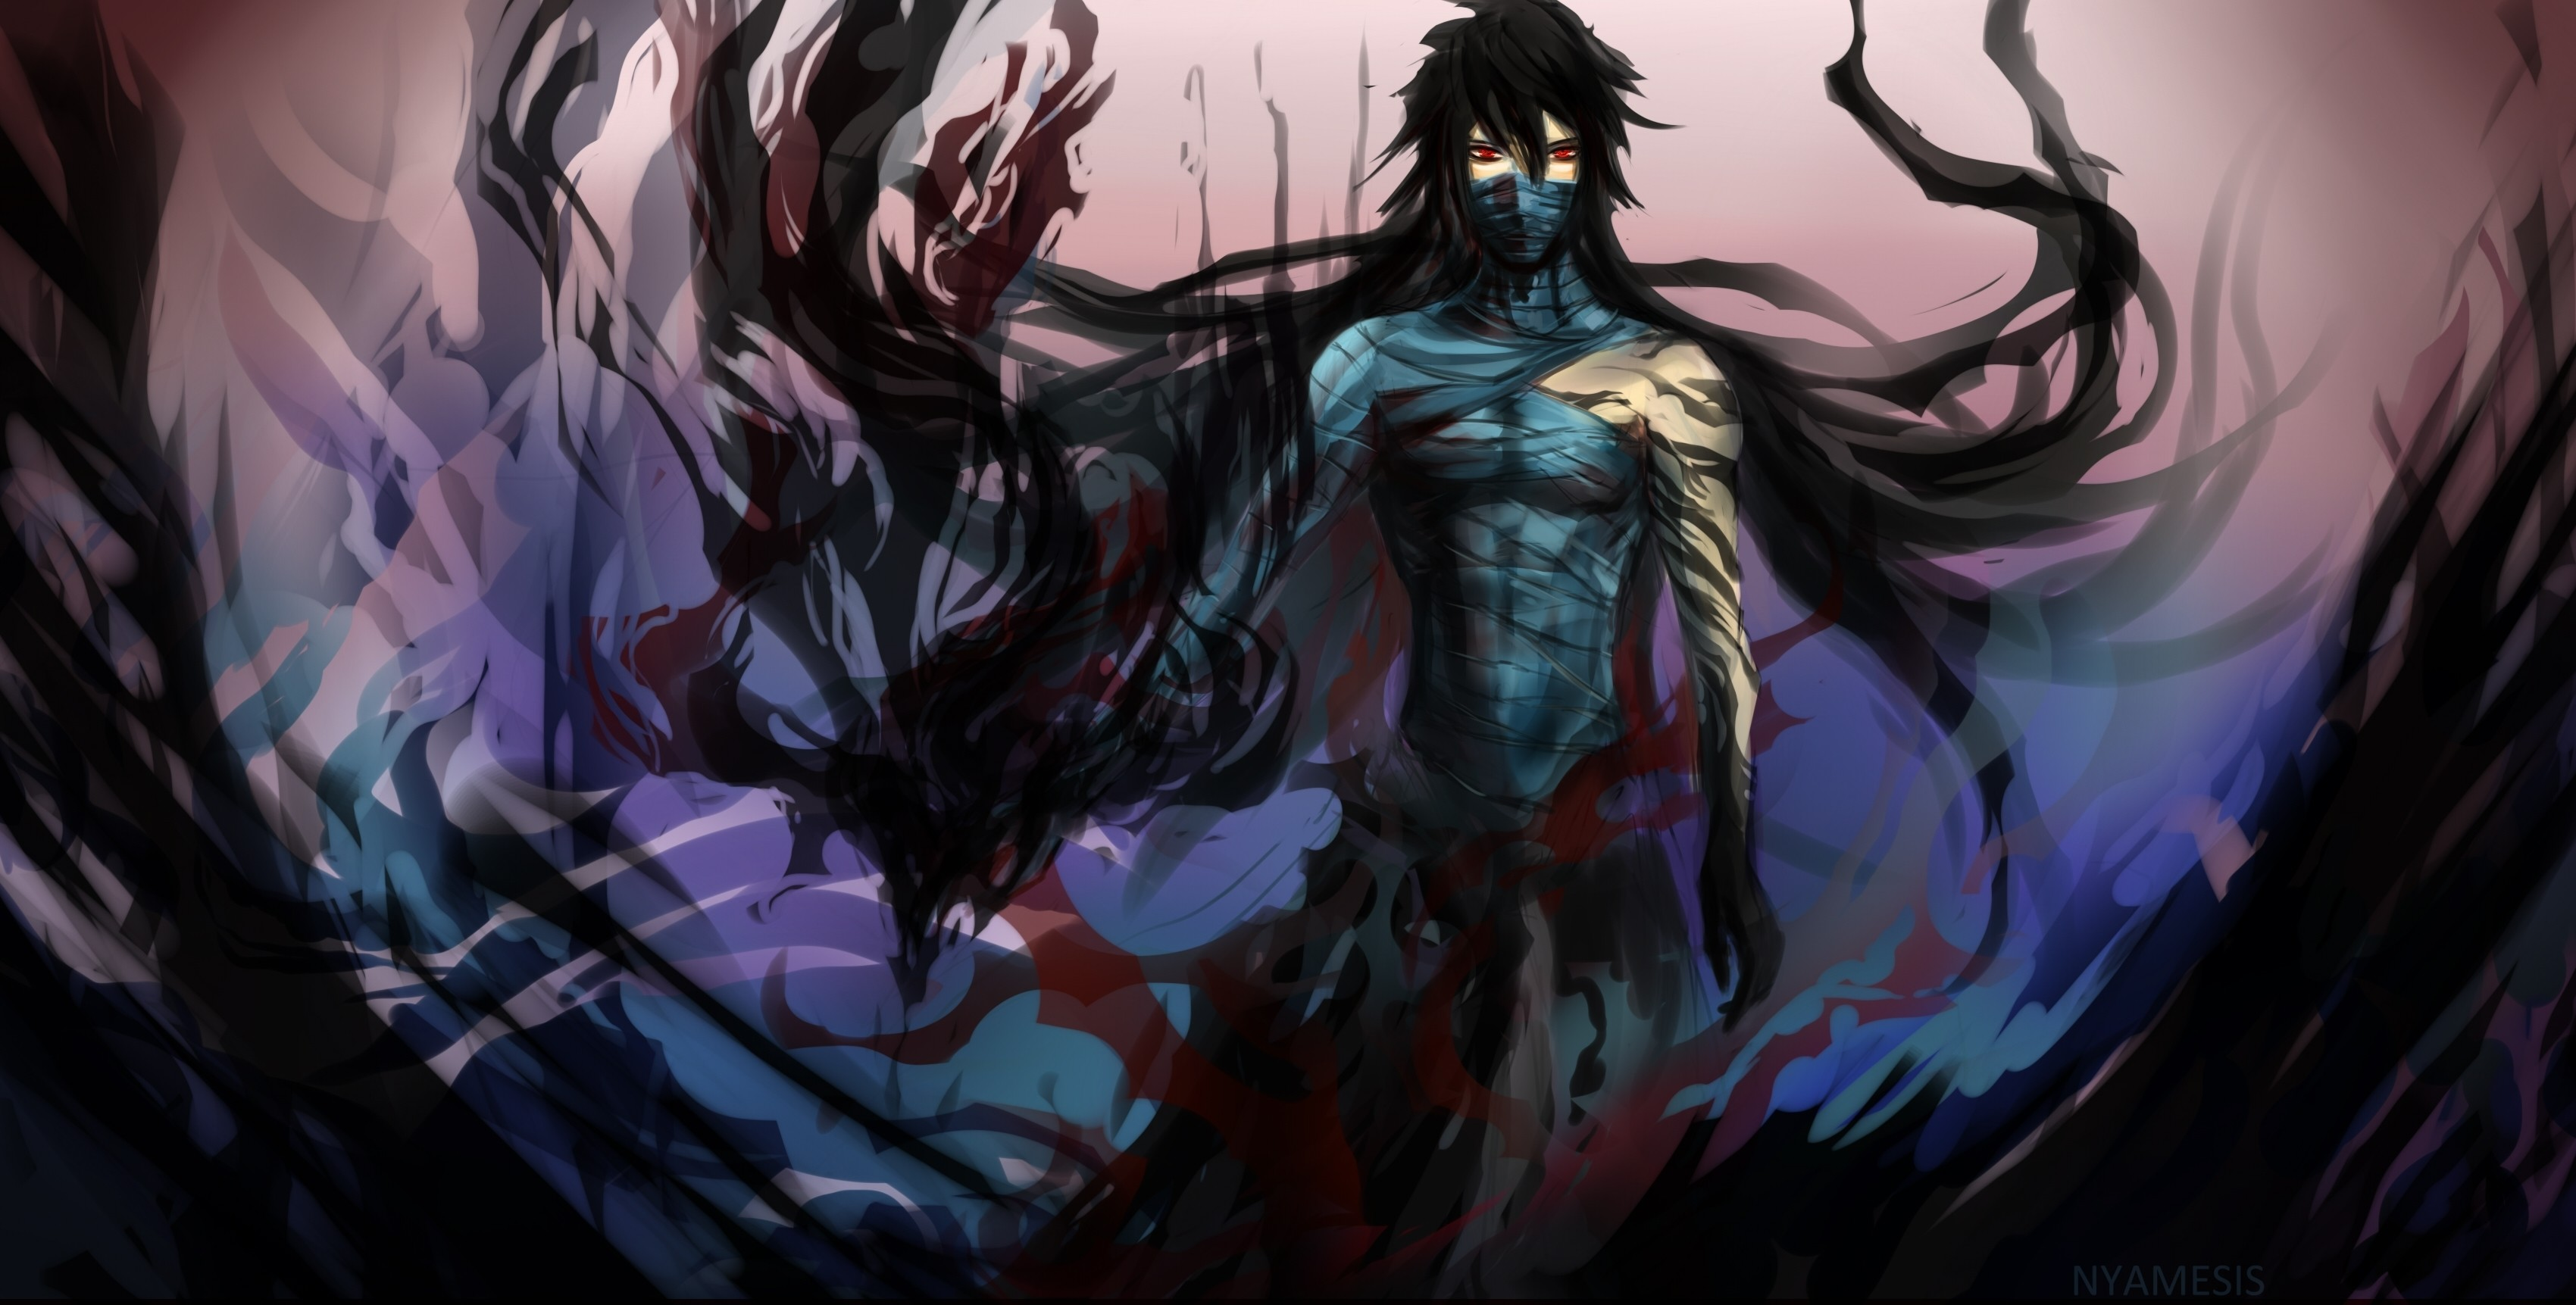 Explore Hd Picture, Wallpaper Art, and more! Image result for warrior anime  male